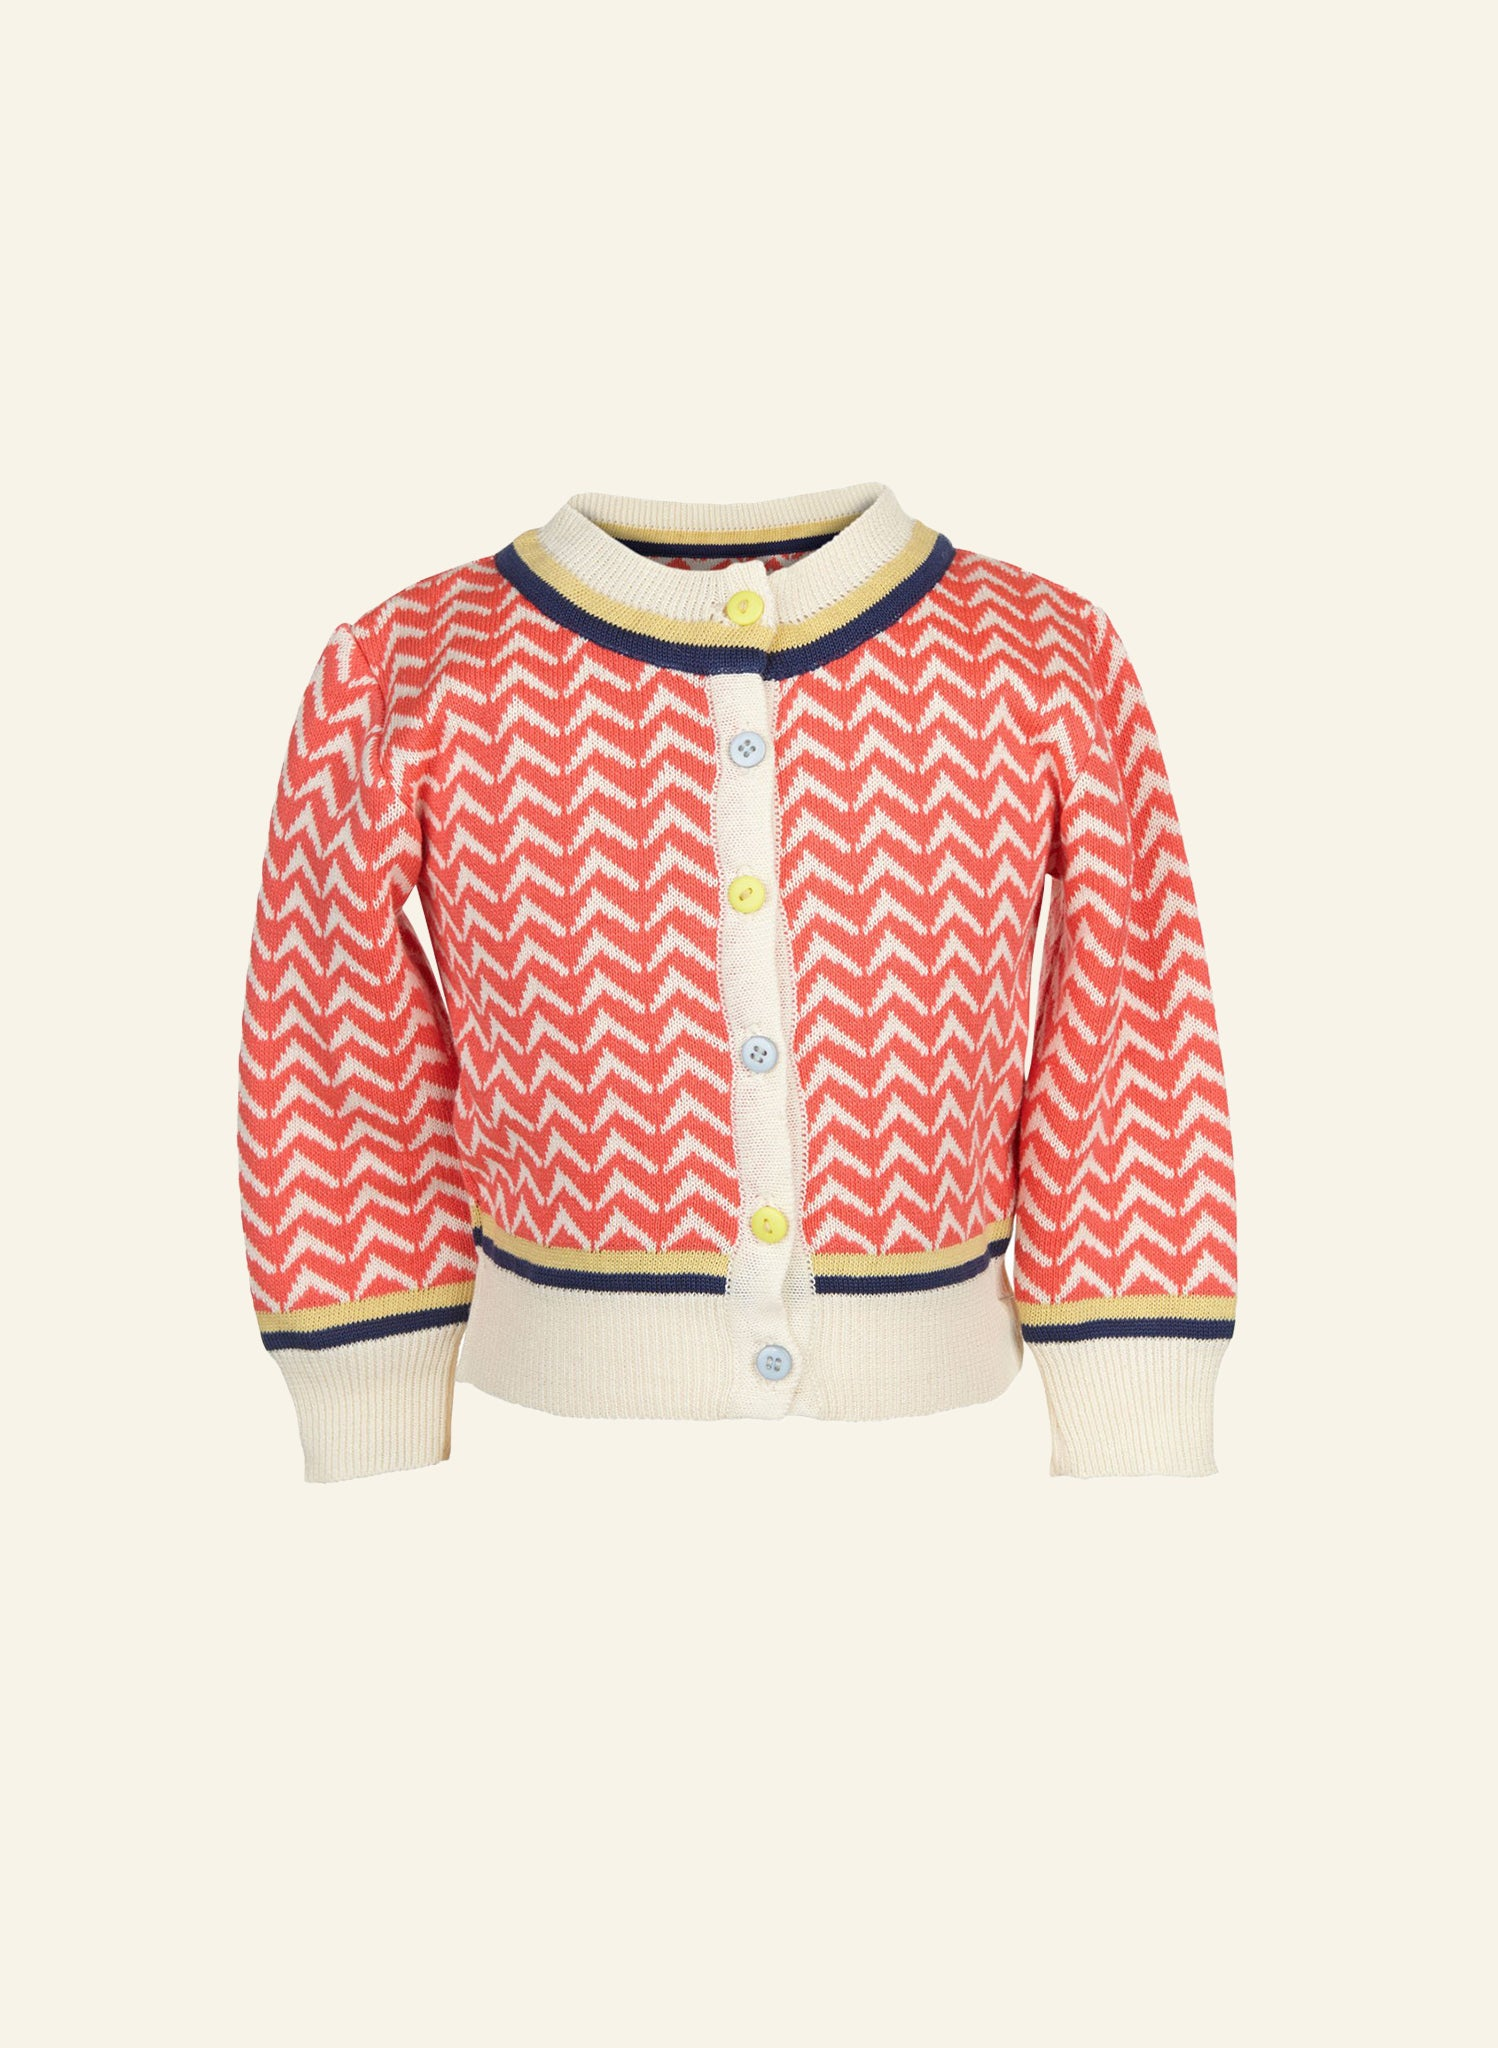 Children's Cardigan - Coral Arrows